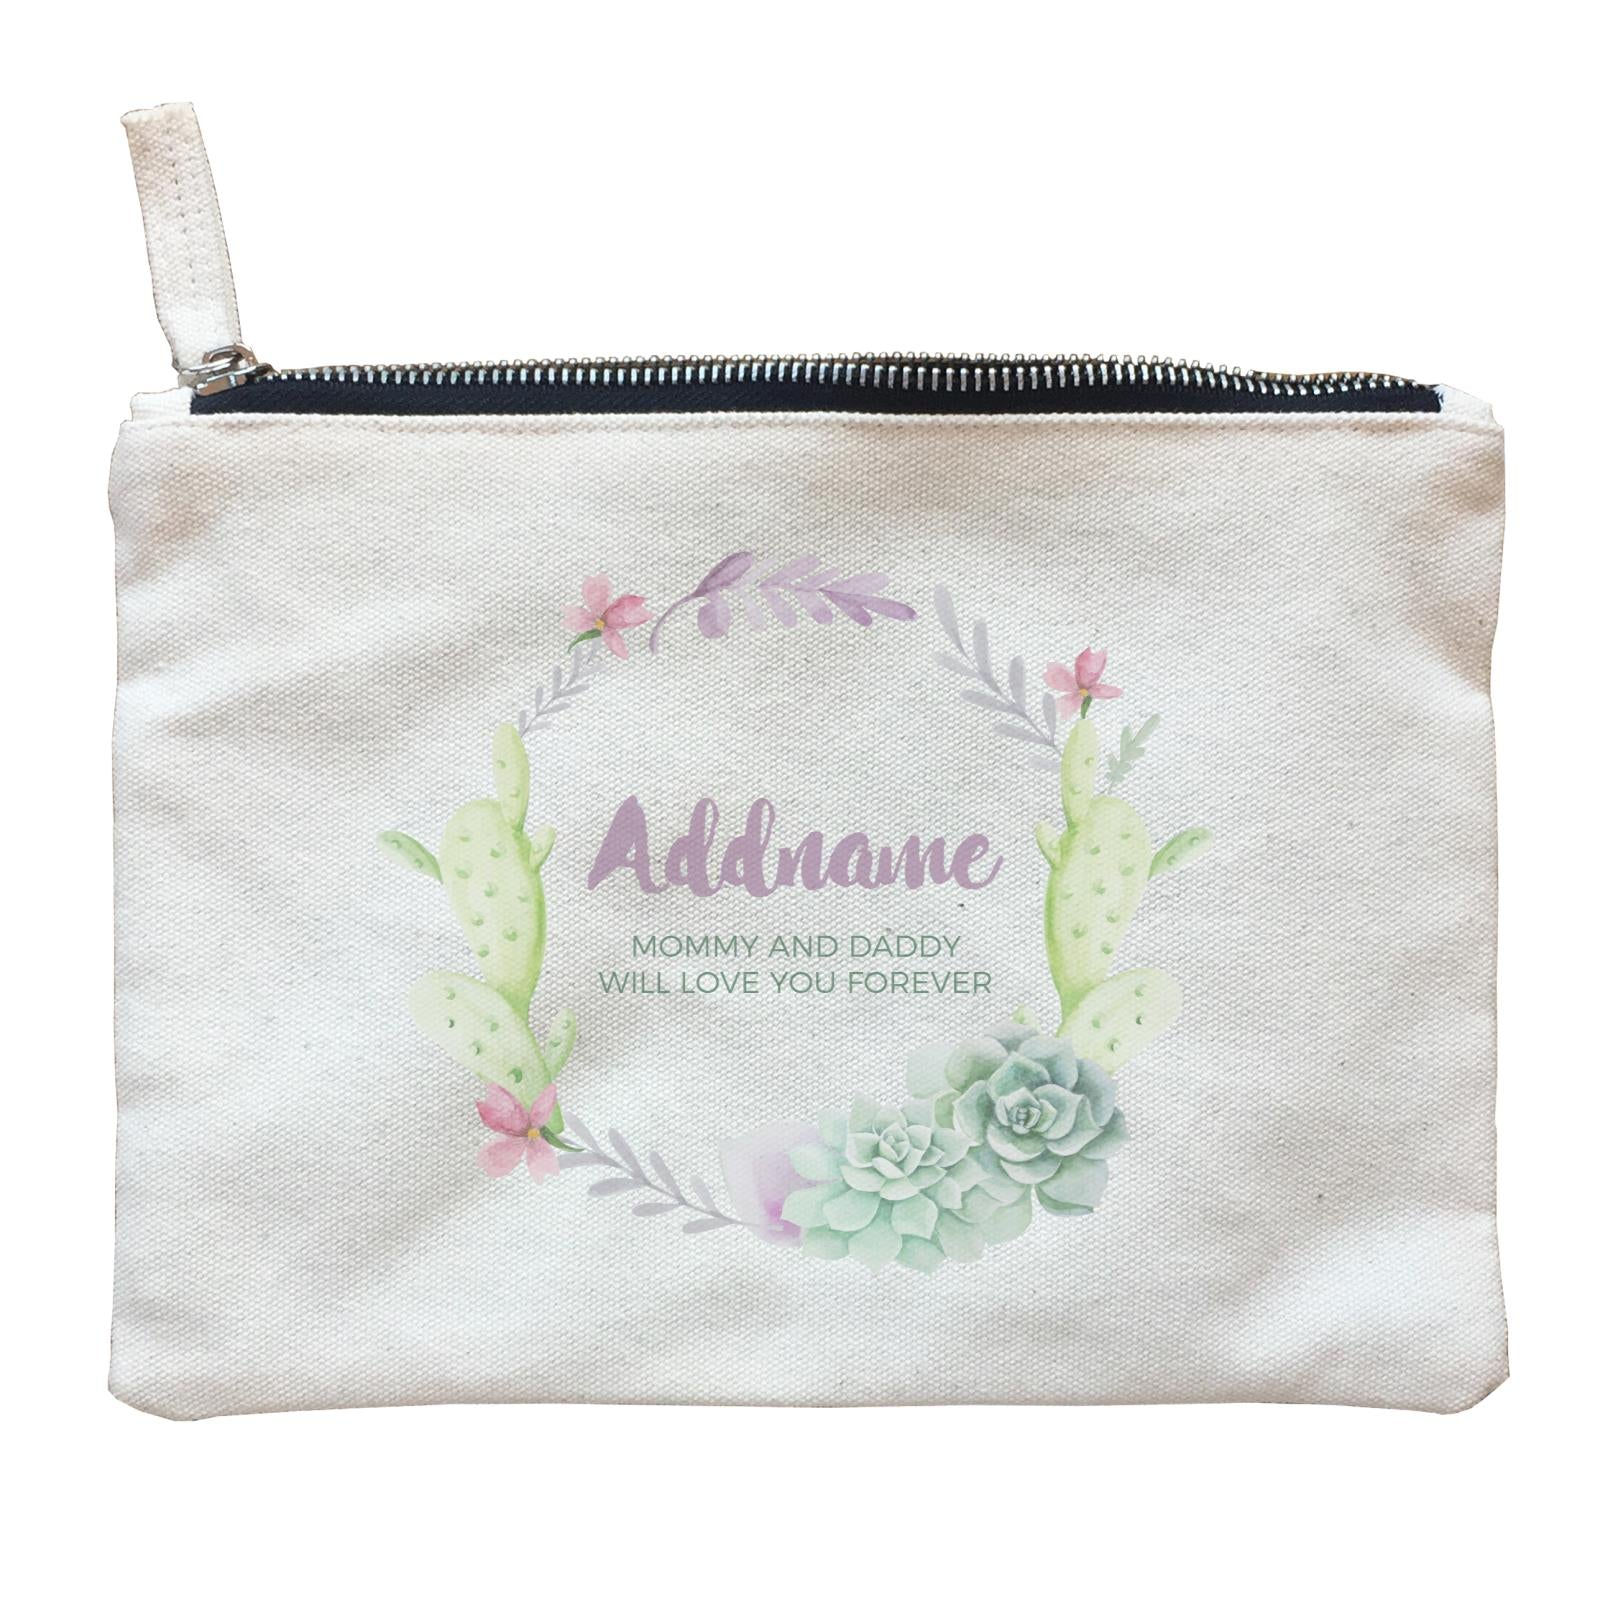 Succulent Wreath Personalizable with Name and Text Zipper Pouch